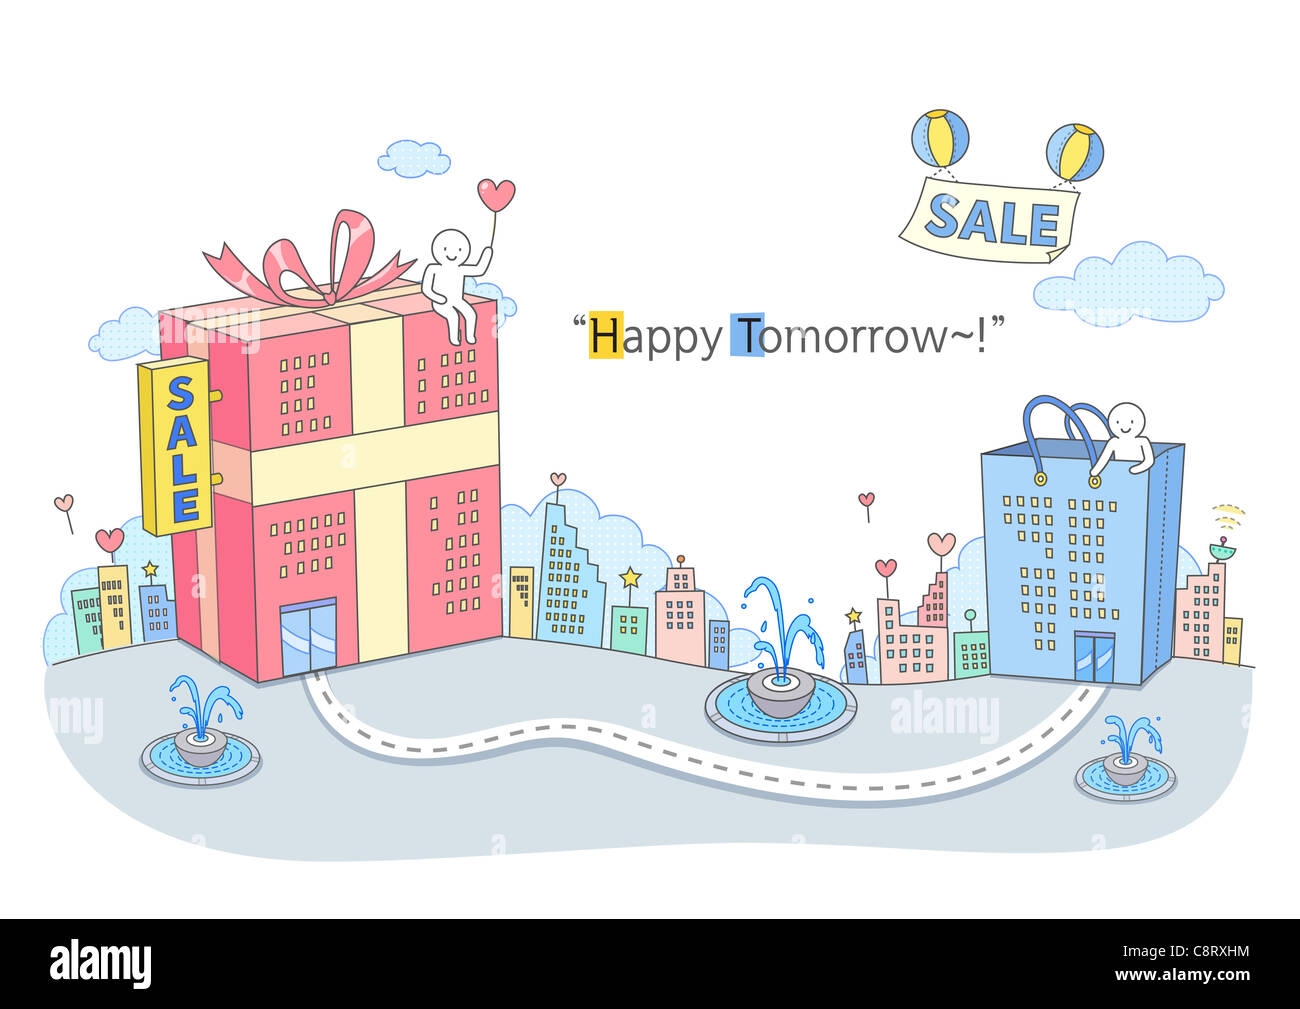 Illustration of shopping concept - Stock Image